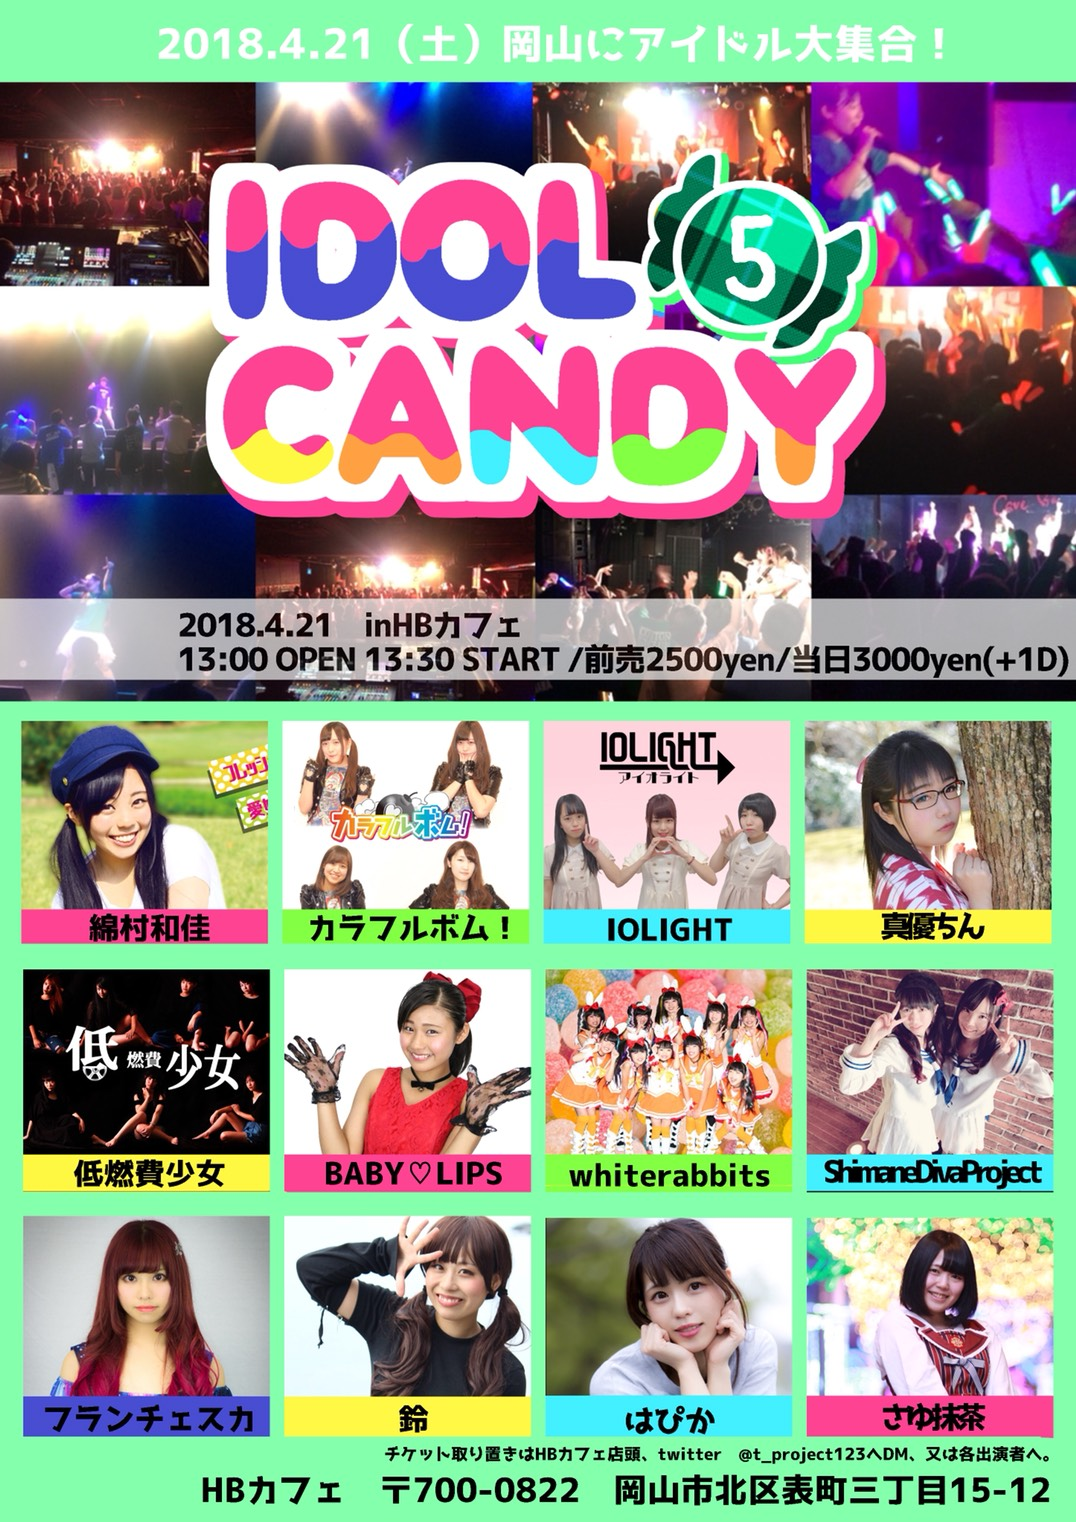 【岡山】IDOL CANDY vol.5 @HBカフェ